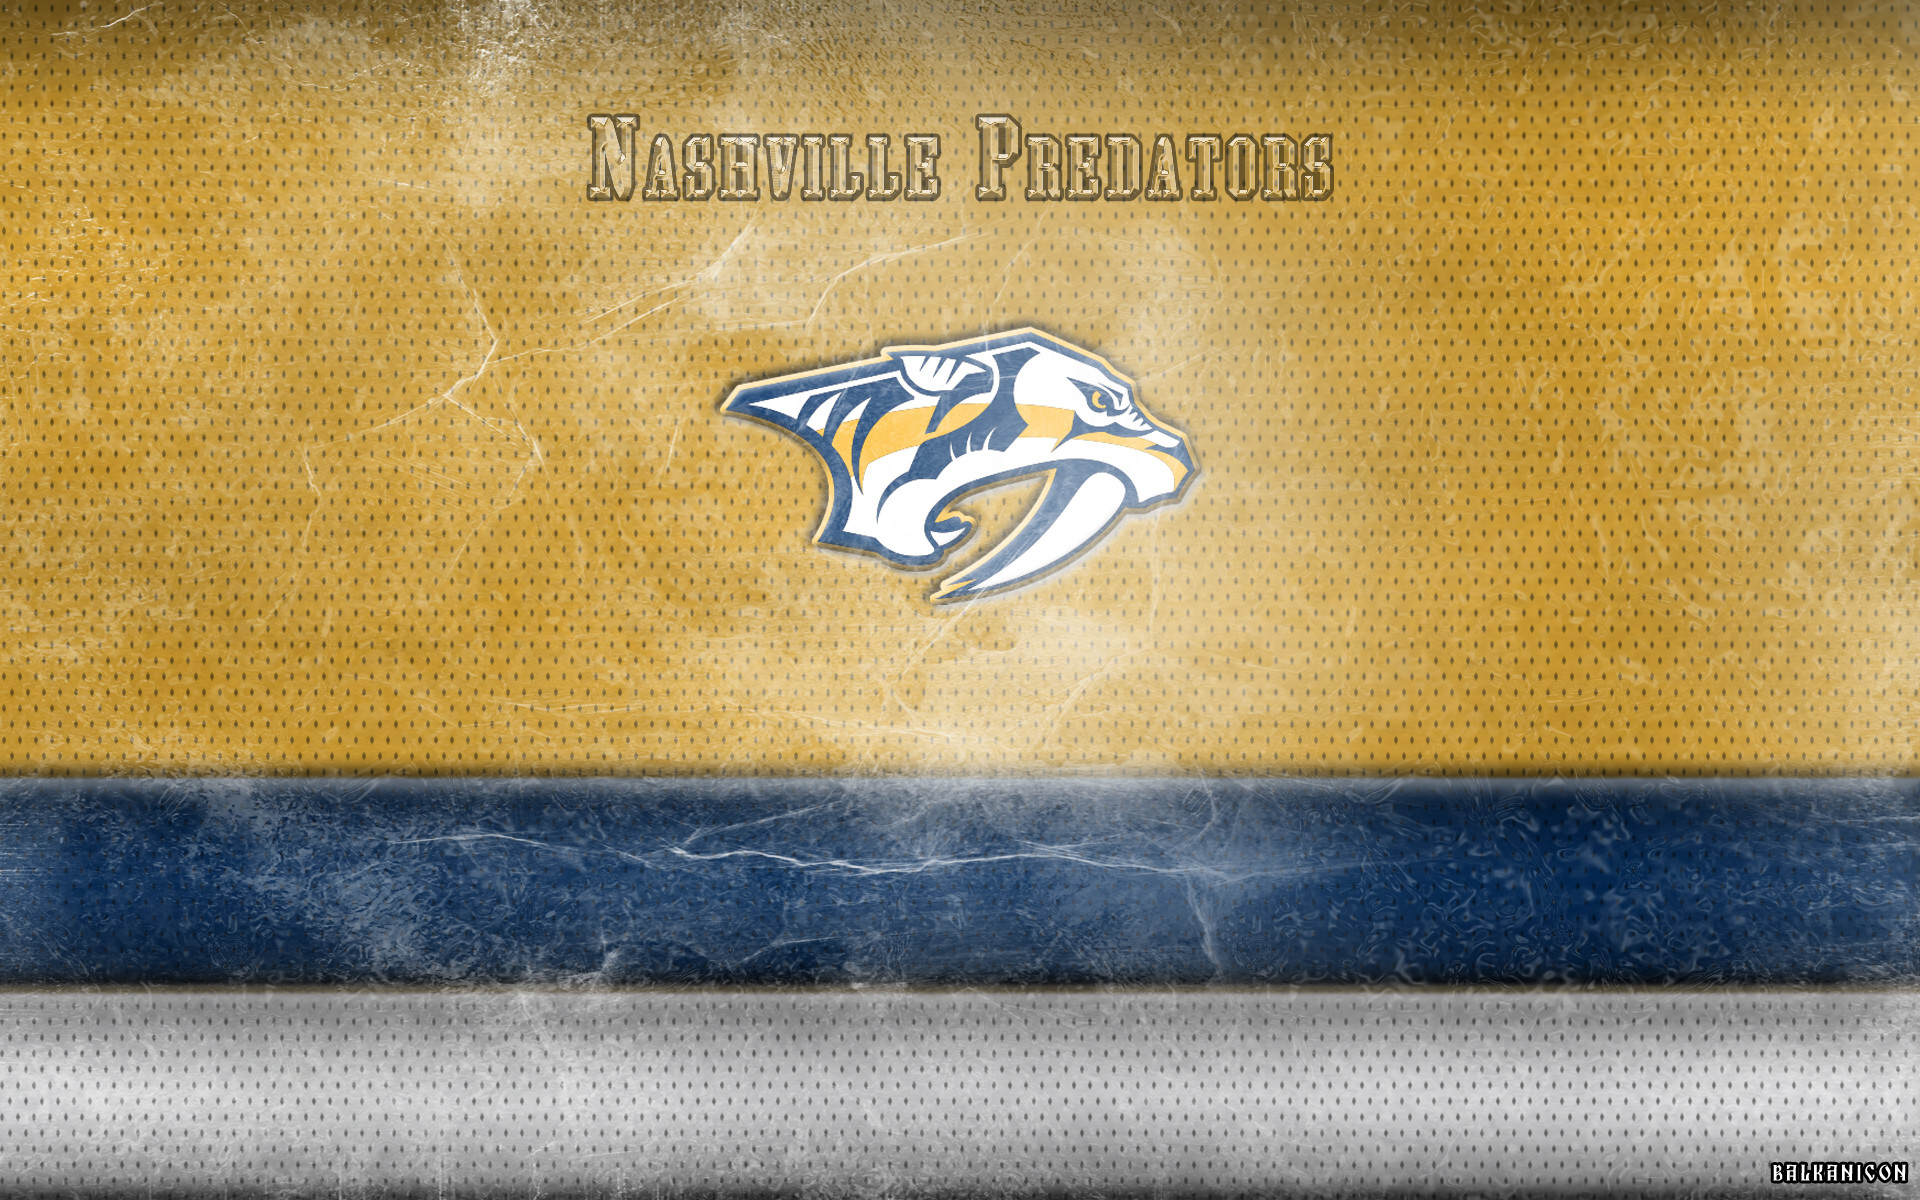 1920x1200 Nashville Predators wallpaper by Balkanicon on DeviantArt